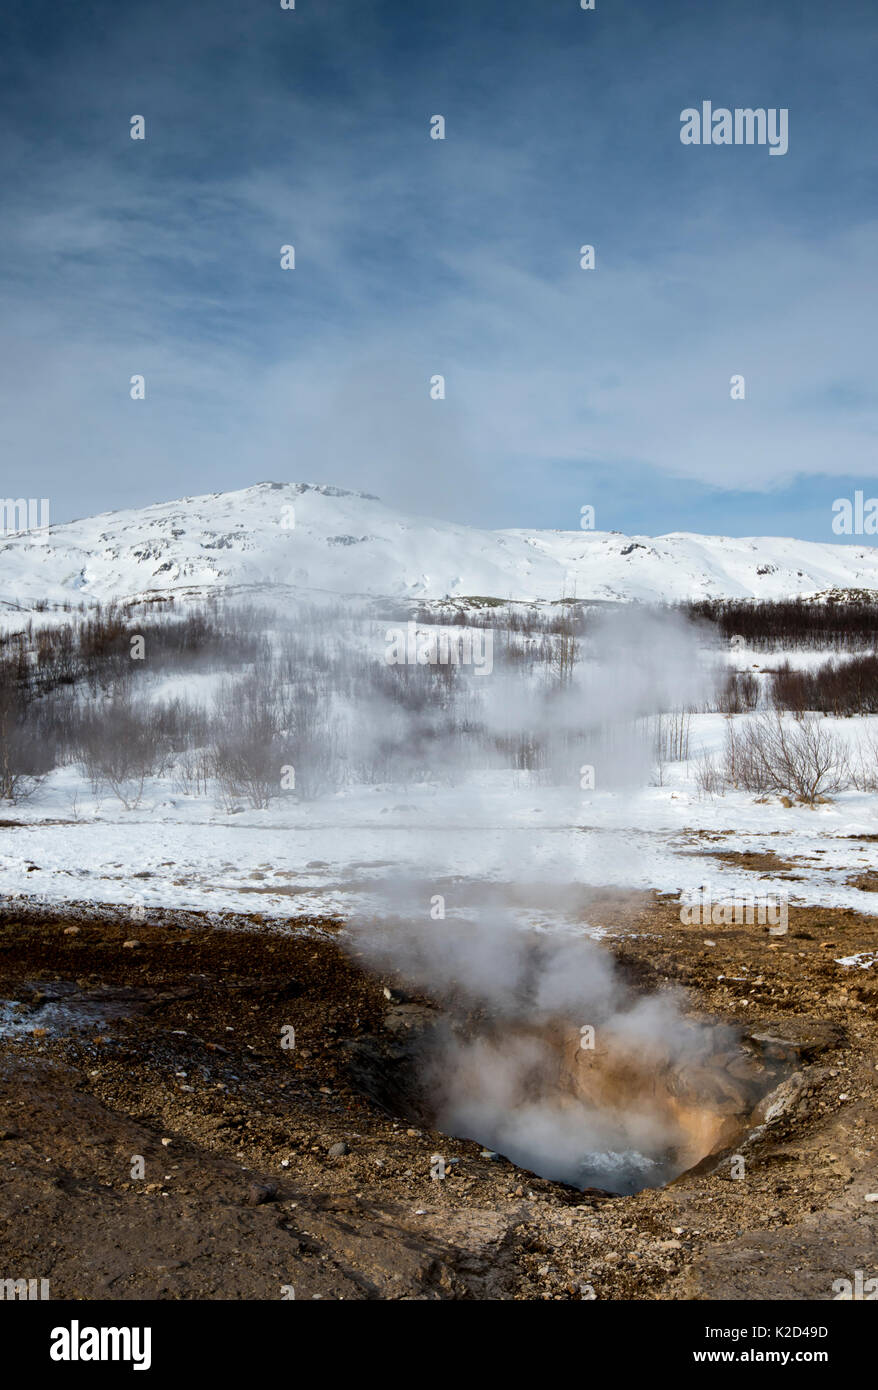 Small geothermal vent at the Geysir Hot Spring Area, South West Iceland, March 2015. - Stock Image